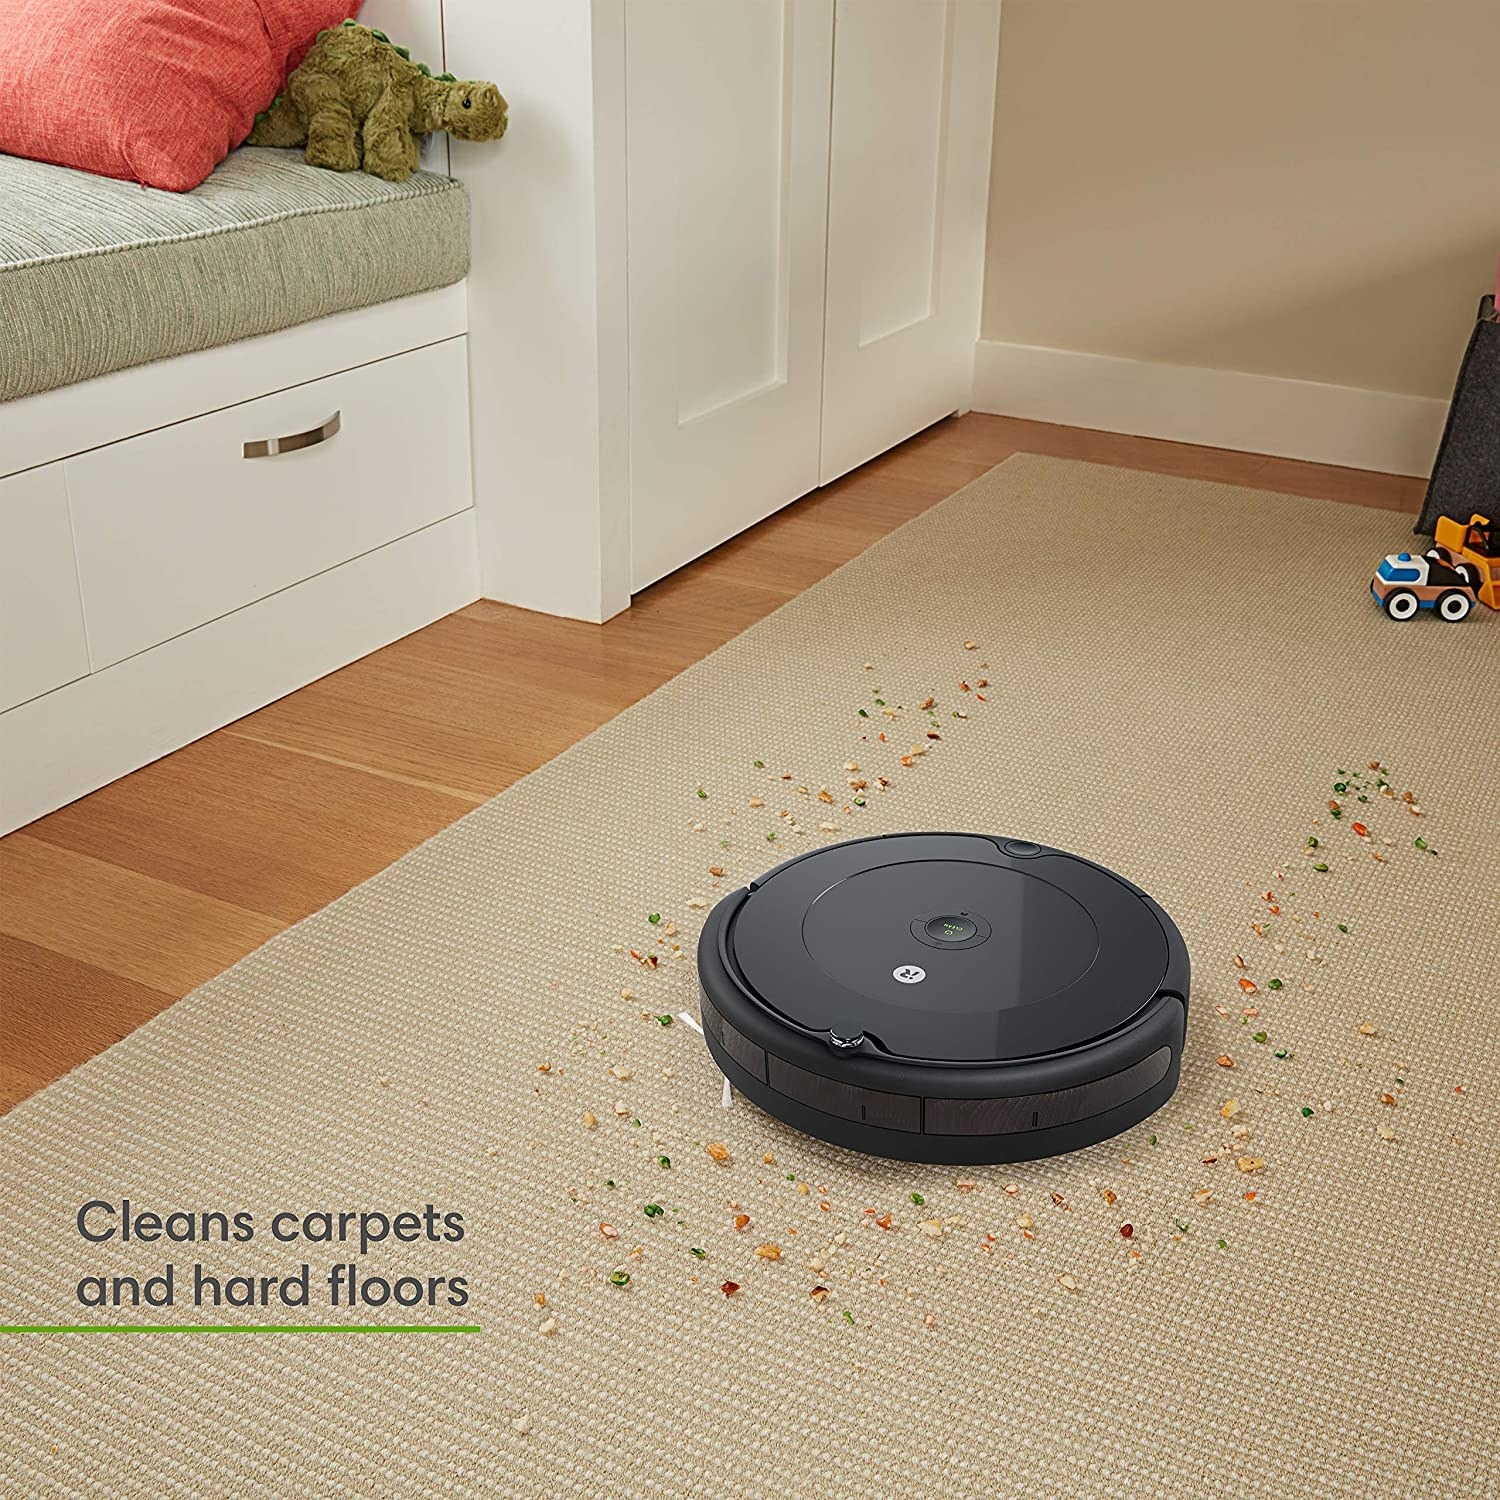 The black roomba vacuuming up a carpet, with text that it cleans carpets and hard floors